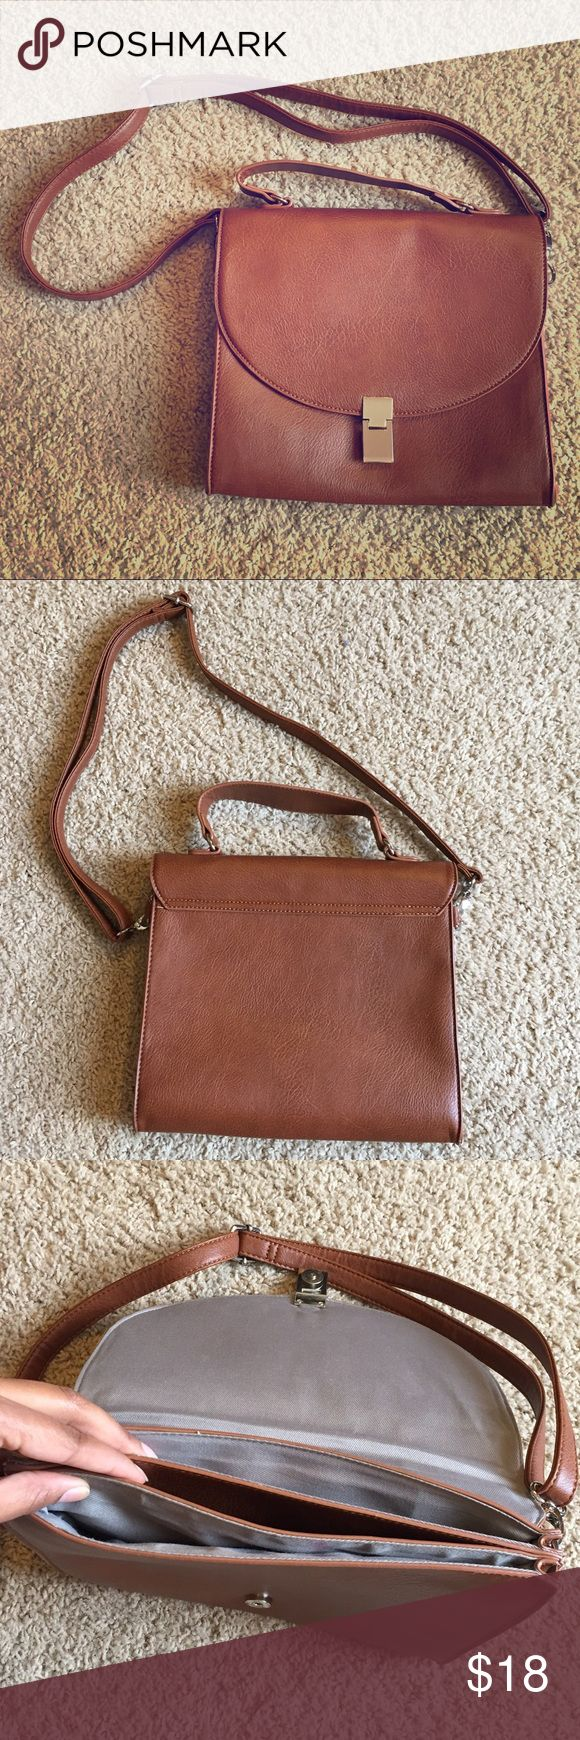 Brown Crossover Purse 💼 Cute brown cross over purse. Like new condition. The straps are adjustable JustFab Bags Crossbody Bags